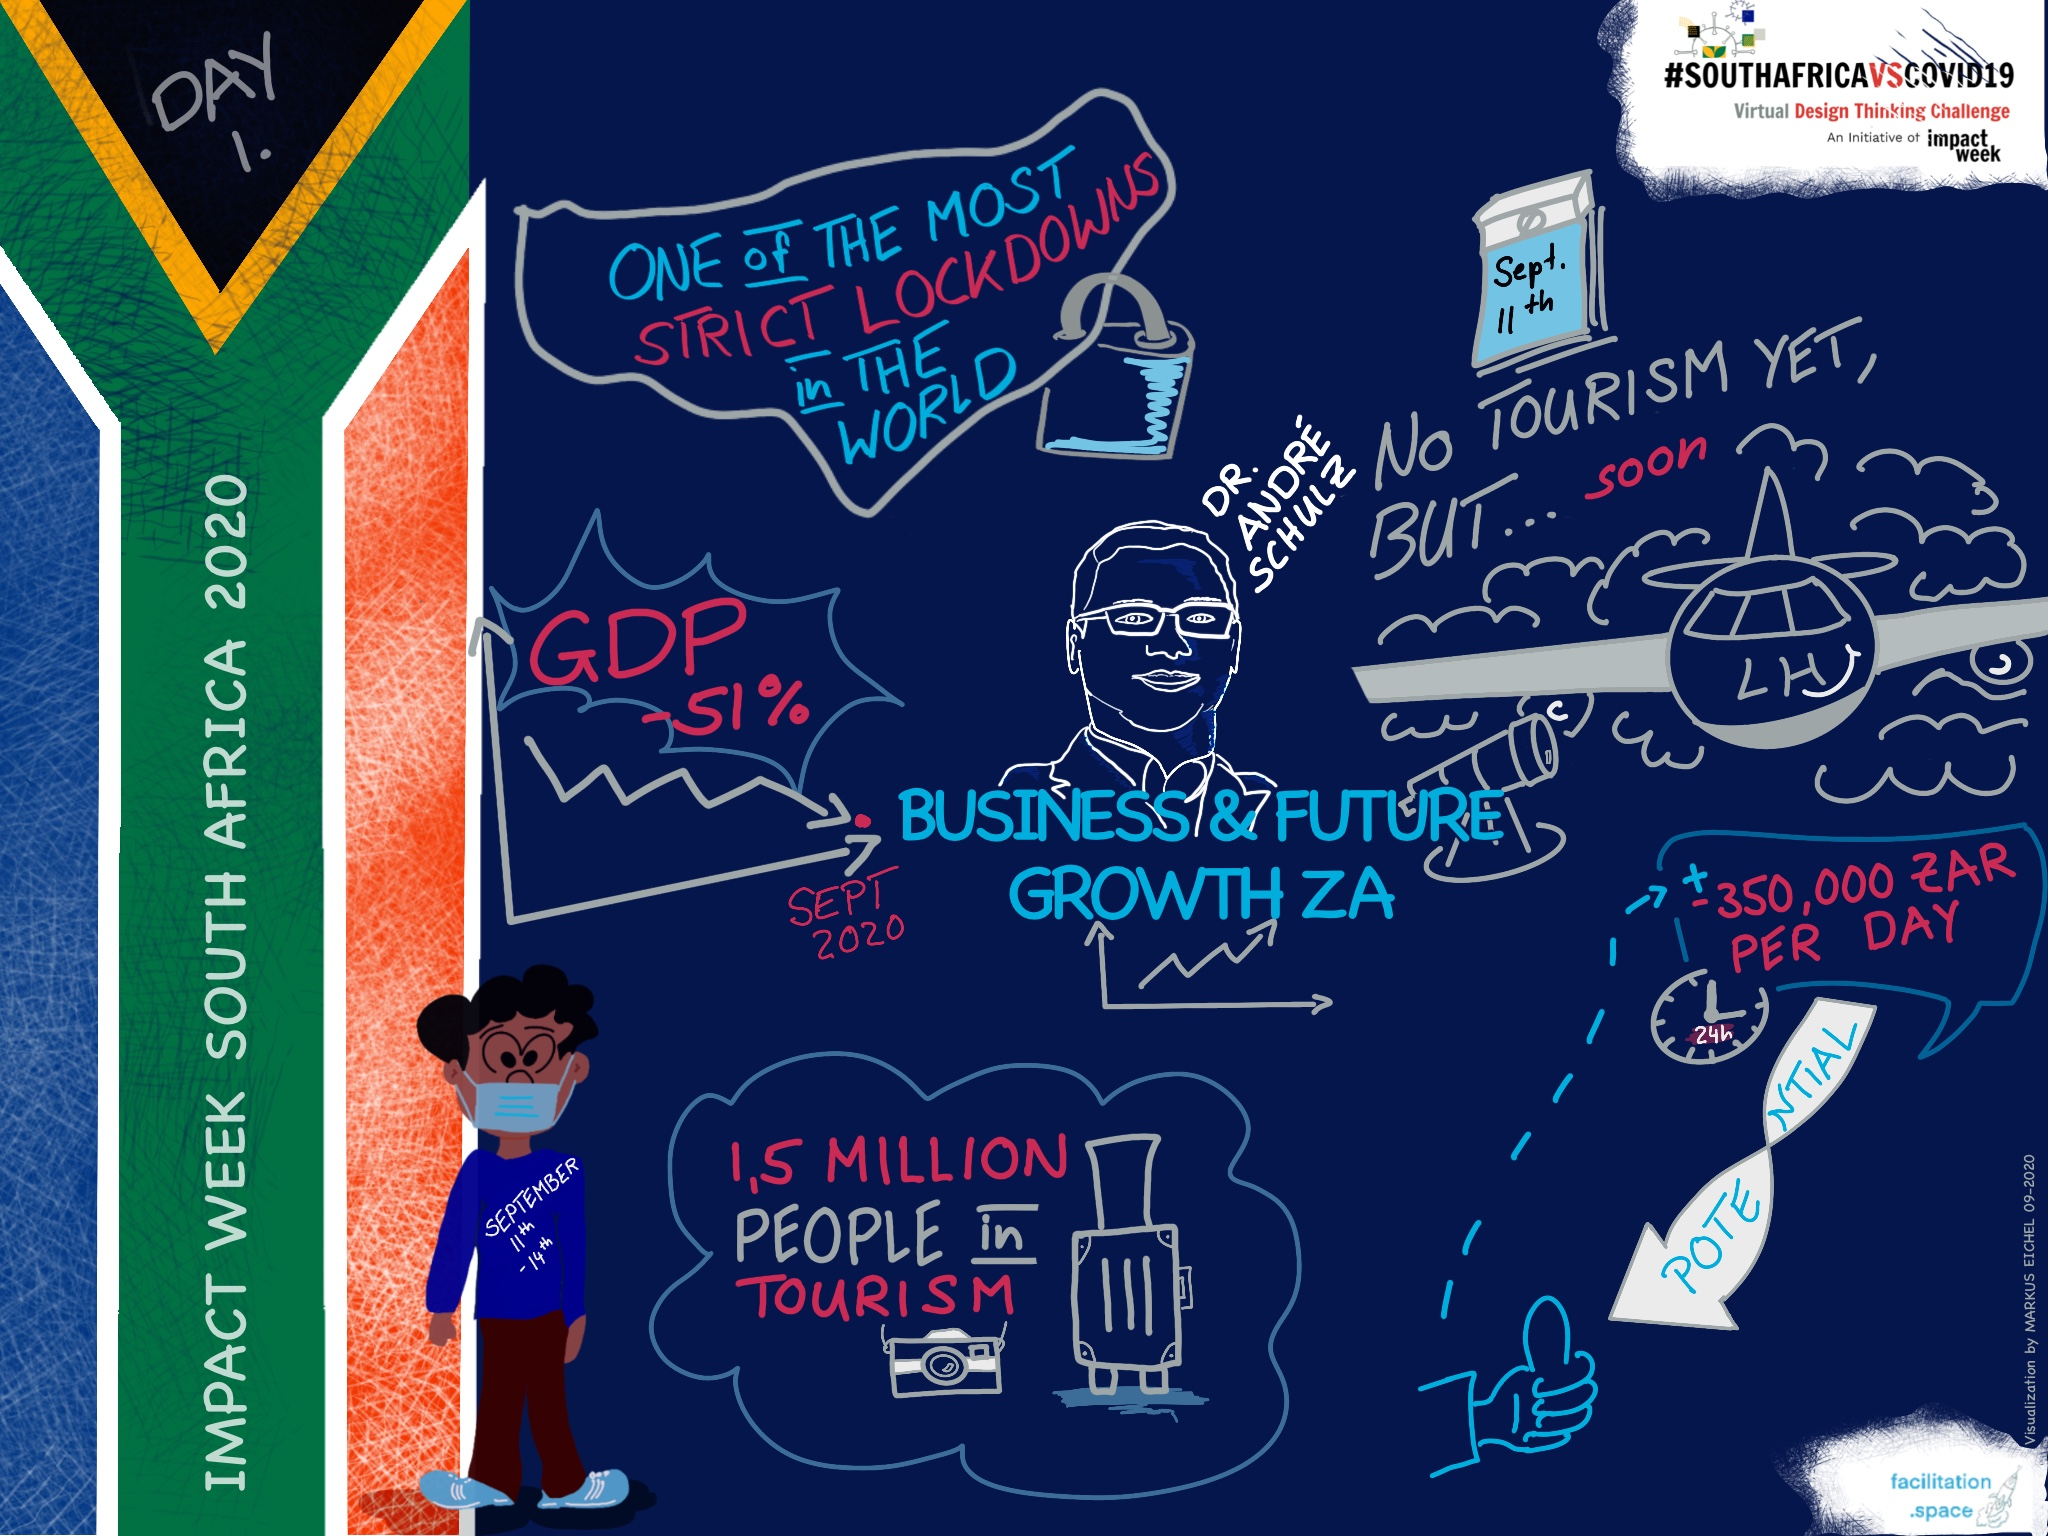 Graphic Recording - Key Note Dr. Andre Schulz - Impact Week South Africa 2020 visualization by Markus Eichel from facilitation.space